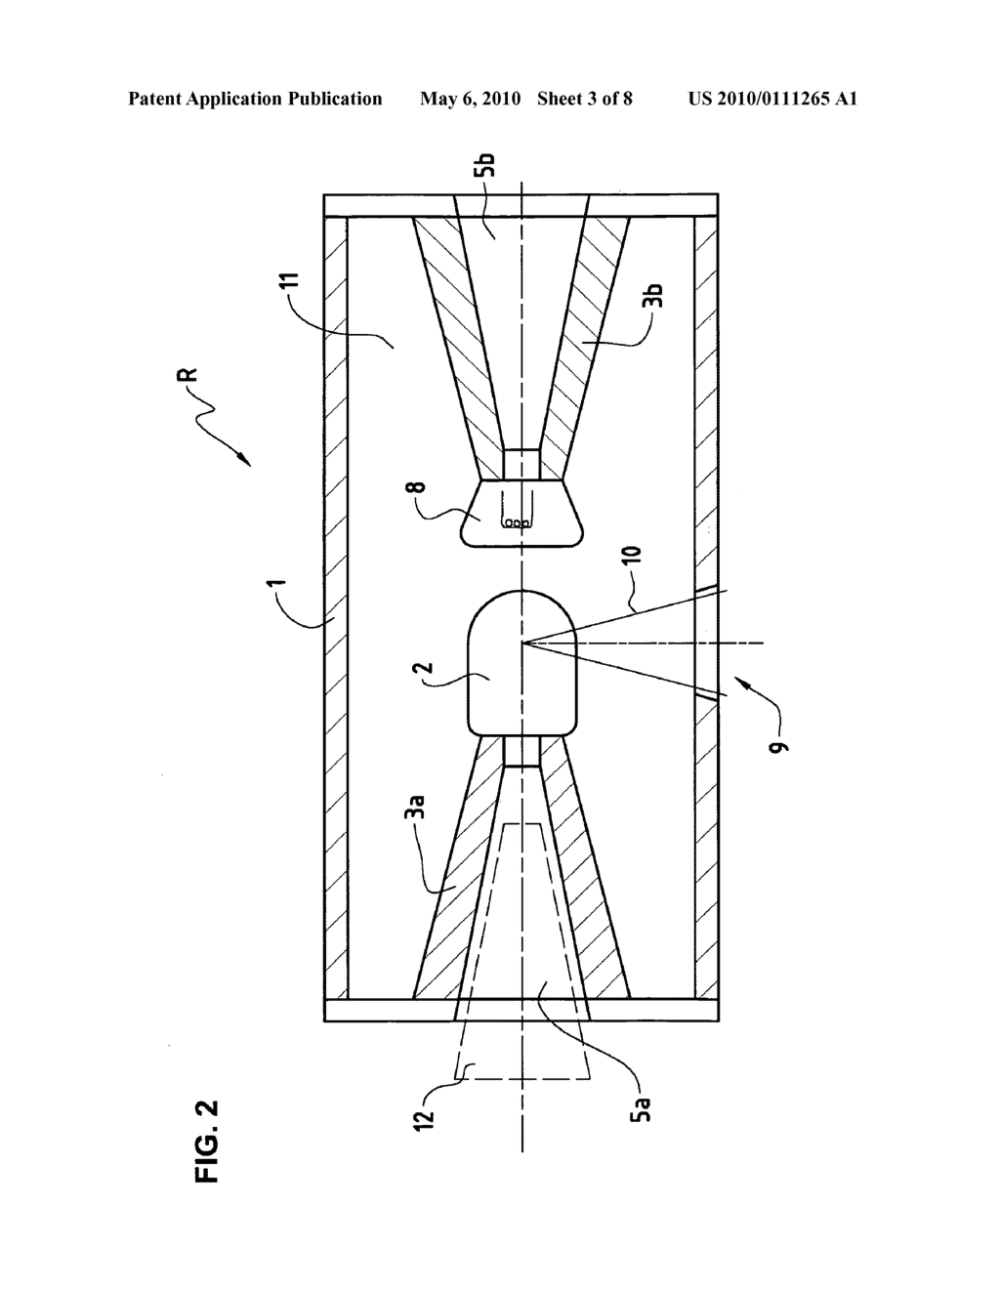 medium resolution of x ray tube with an anode isolation element for liquid cooling and a receptacle for a high voltage plug diagram schematic and image 04